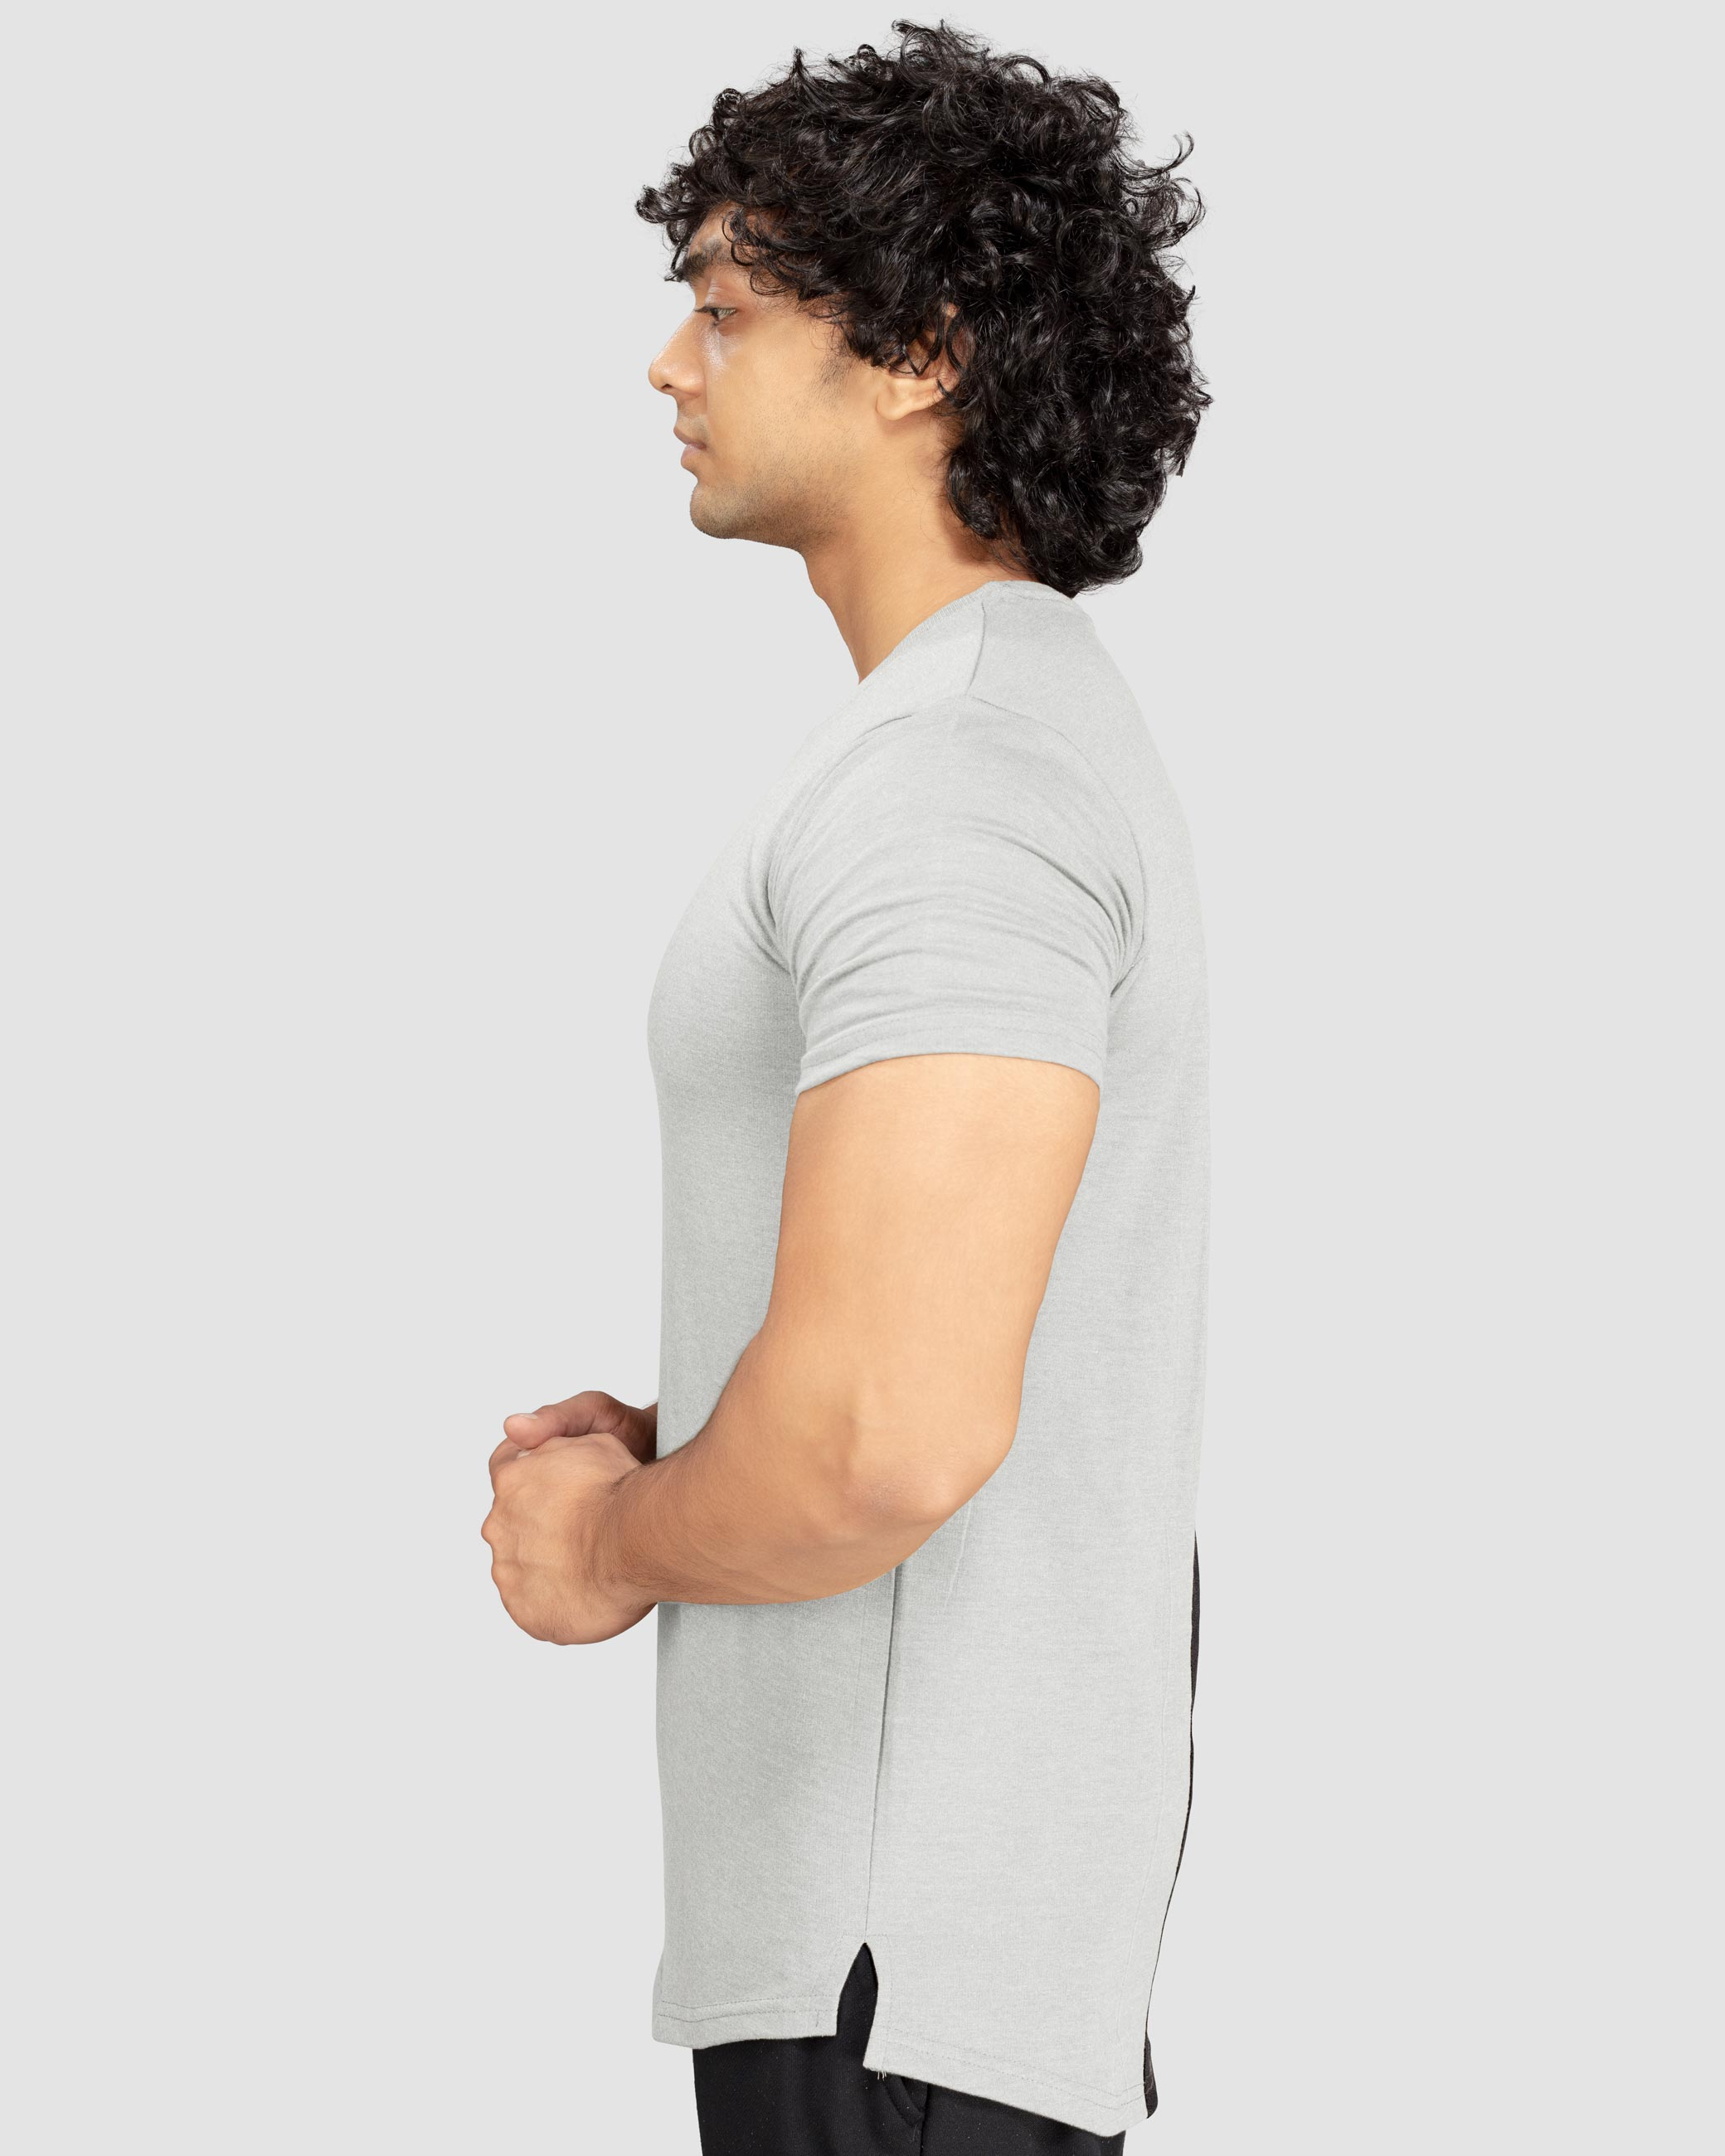 Flex Leisure Longline t-shirt(Light Grey) Athflex